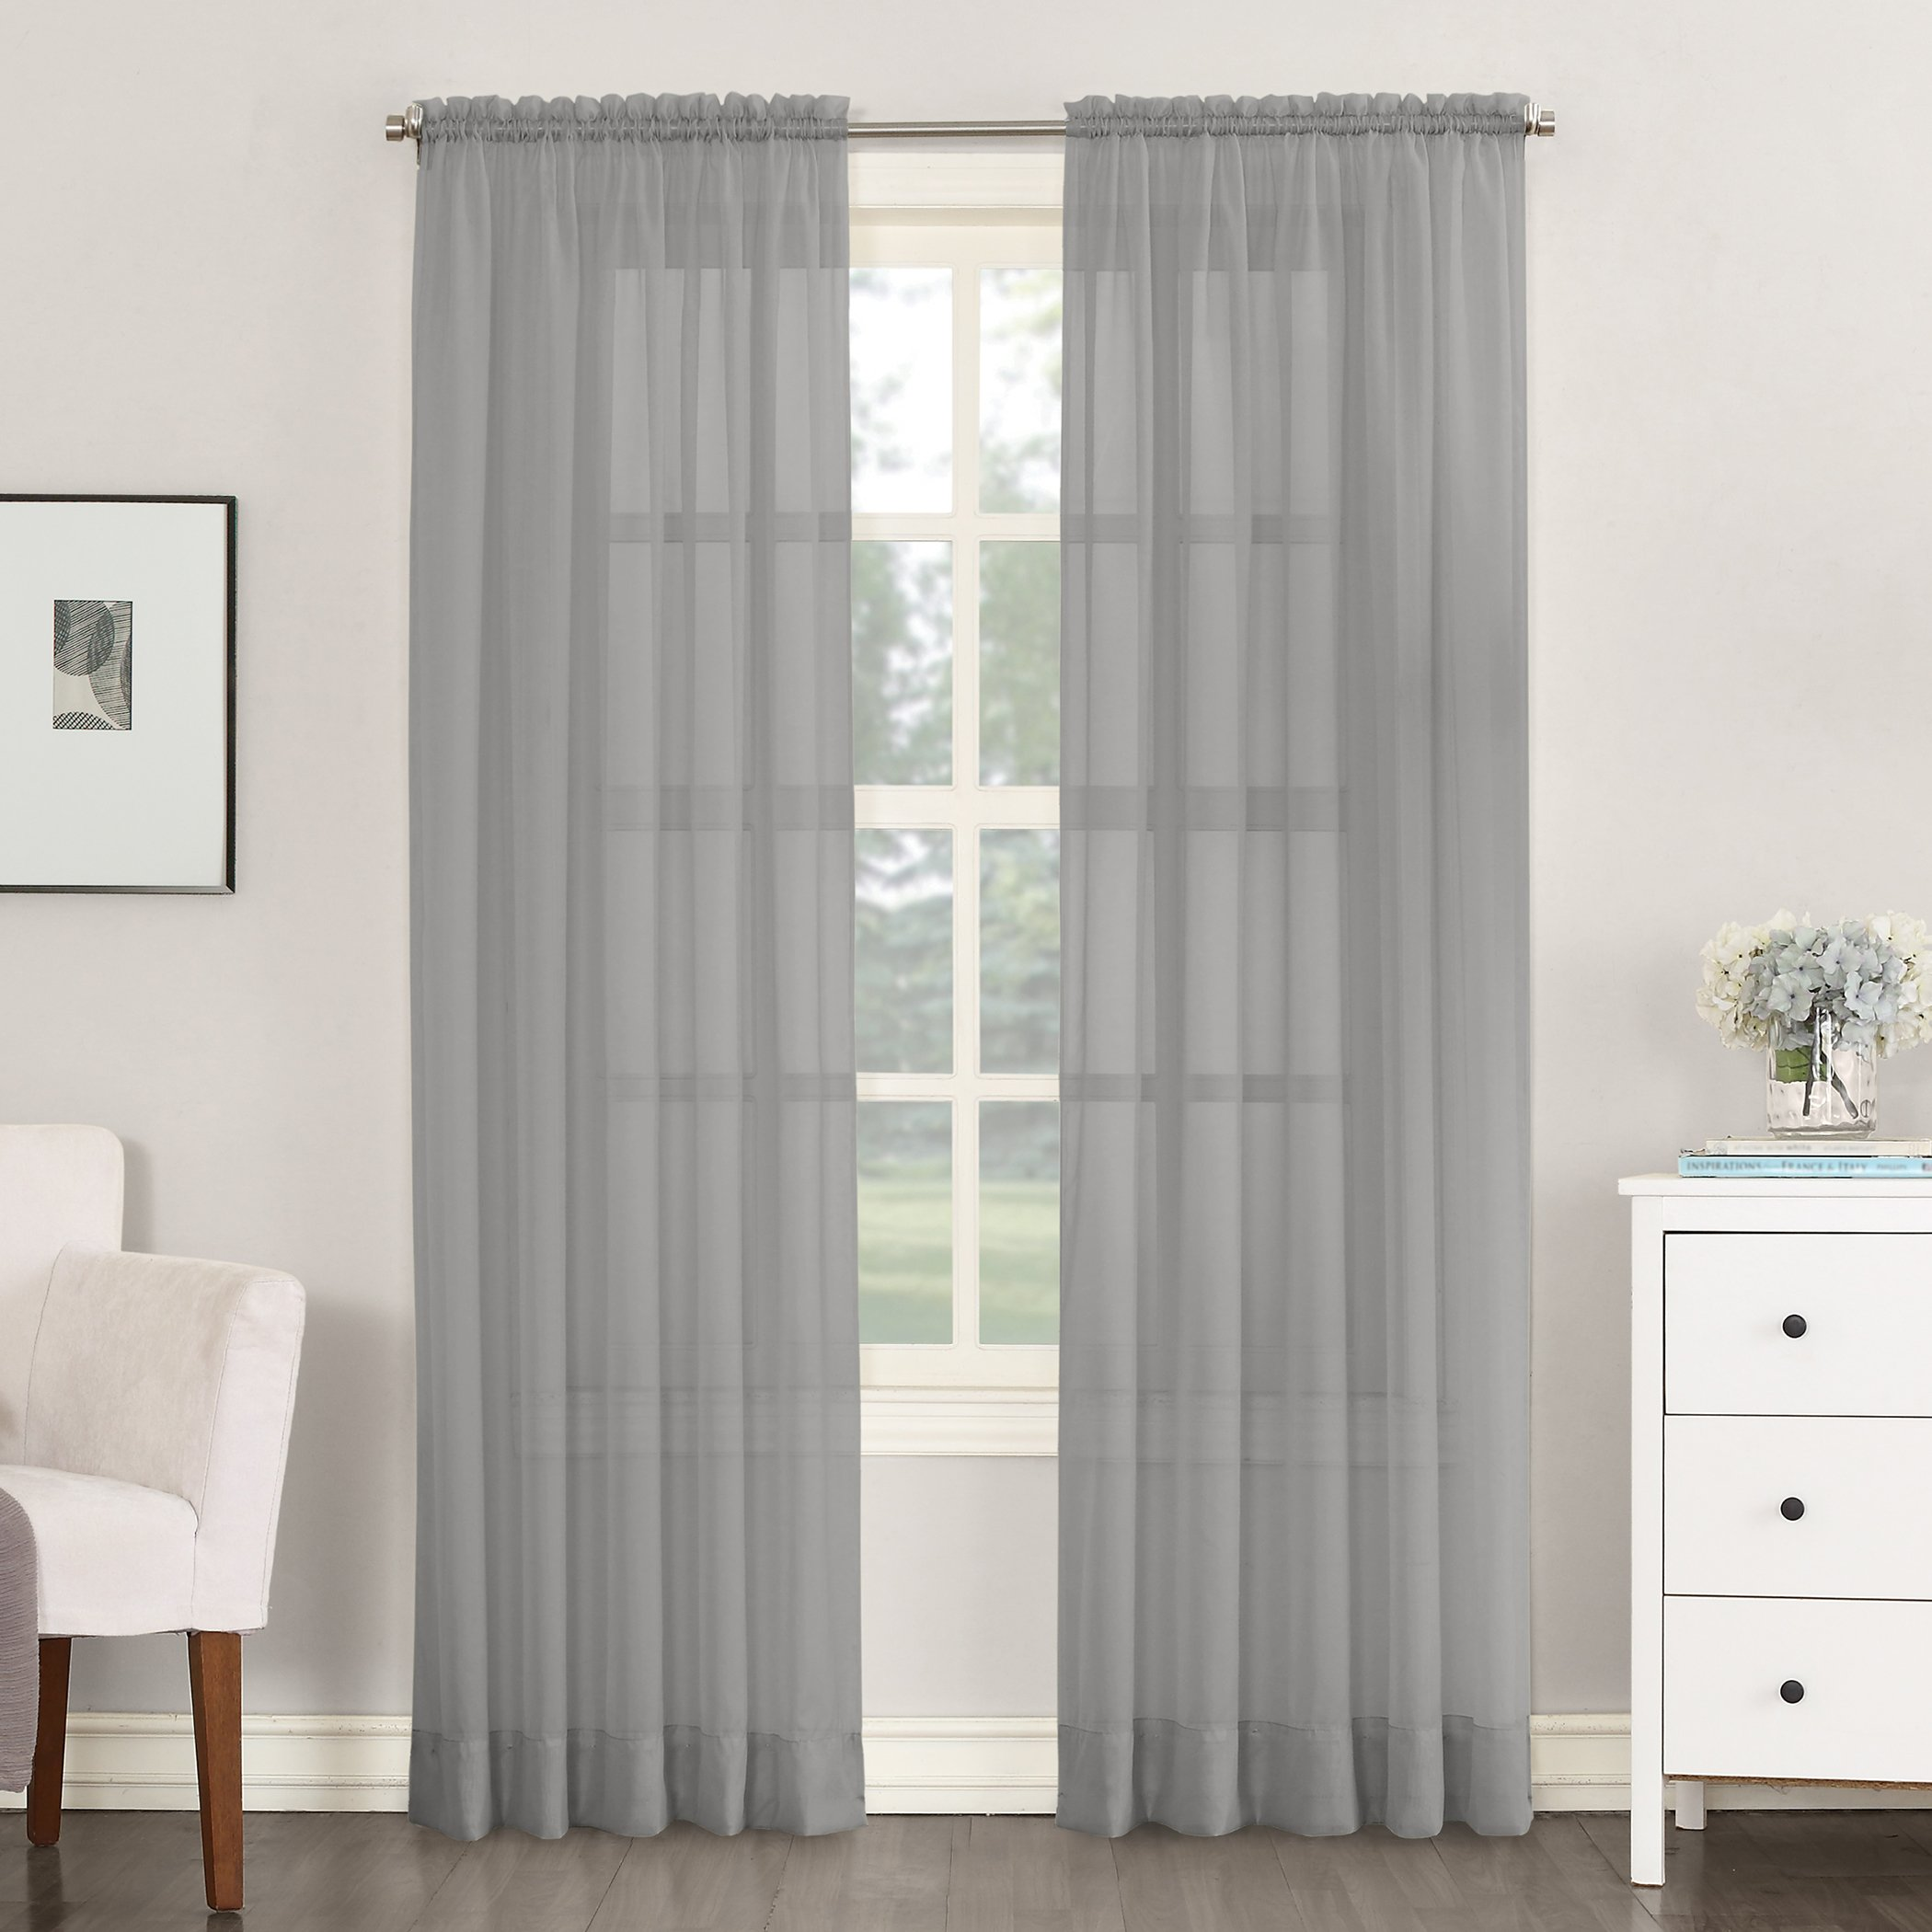 No. 918 Emily Sheer Voile Rod Pocket Curtain Panel, 59'' x 84'', Charcoal by No. 918